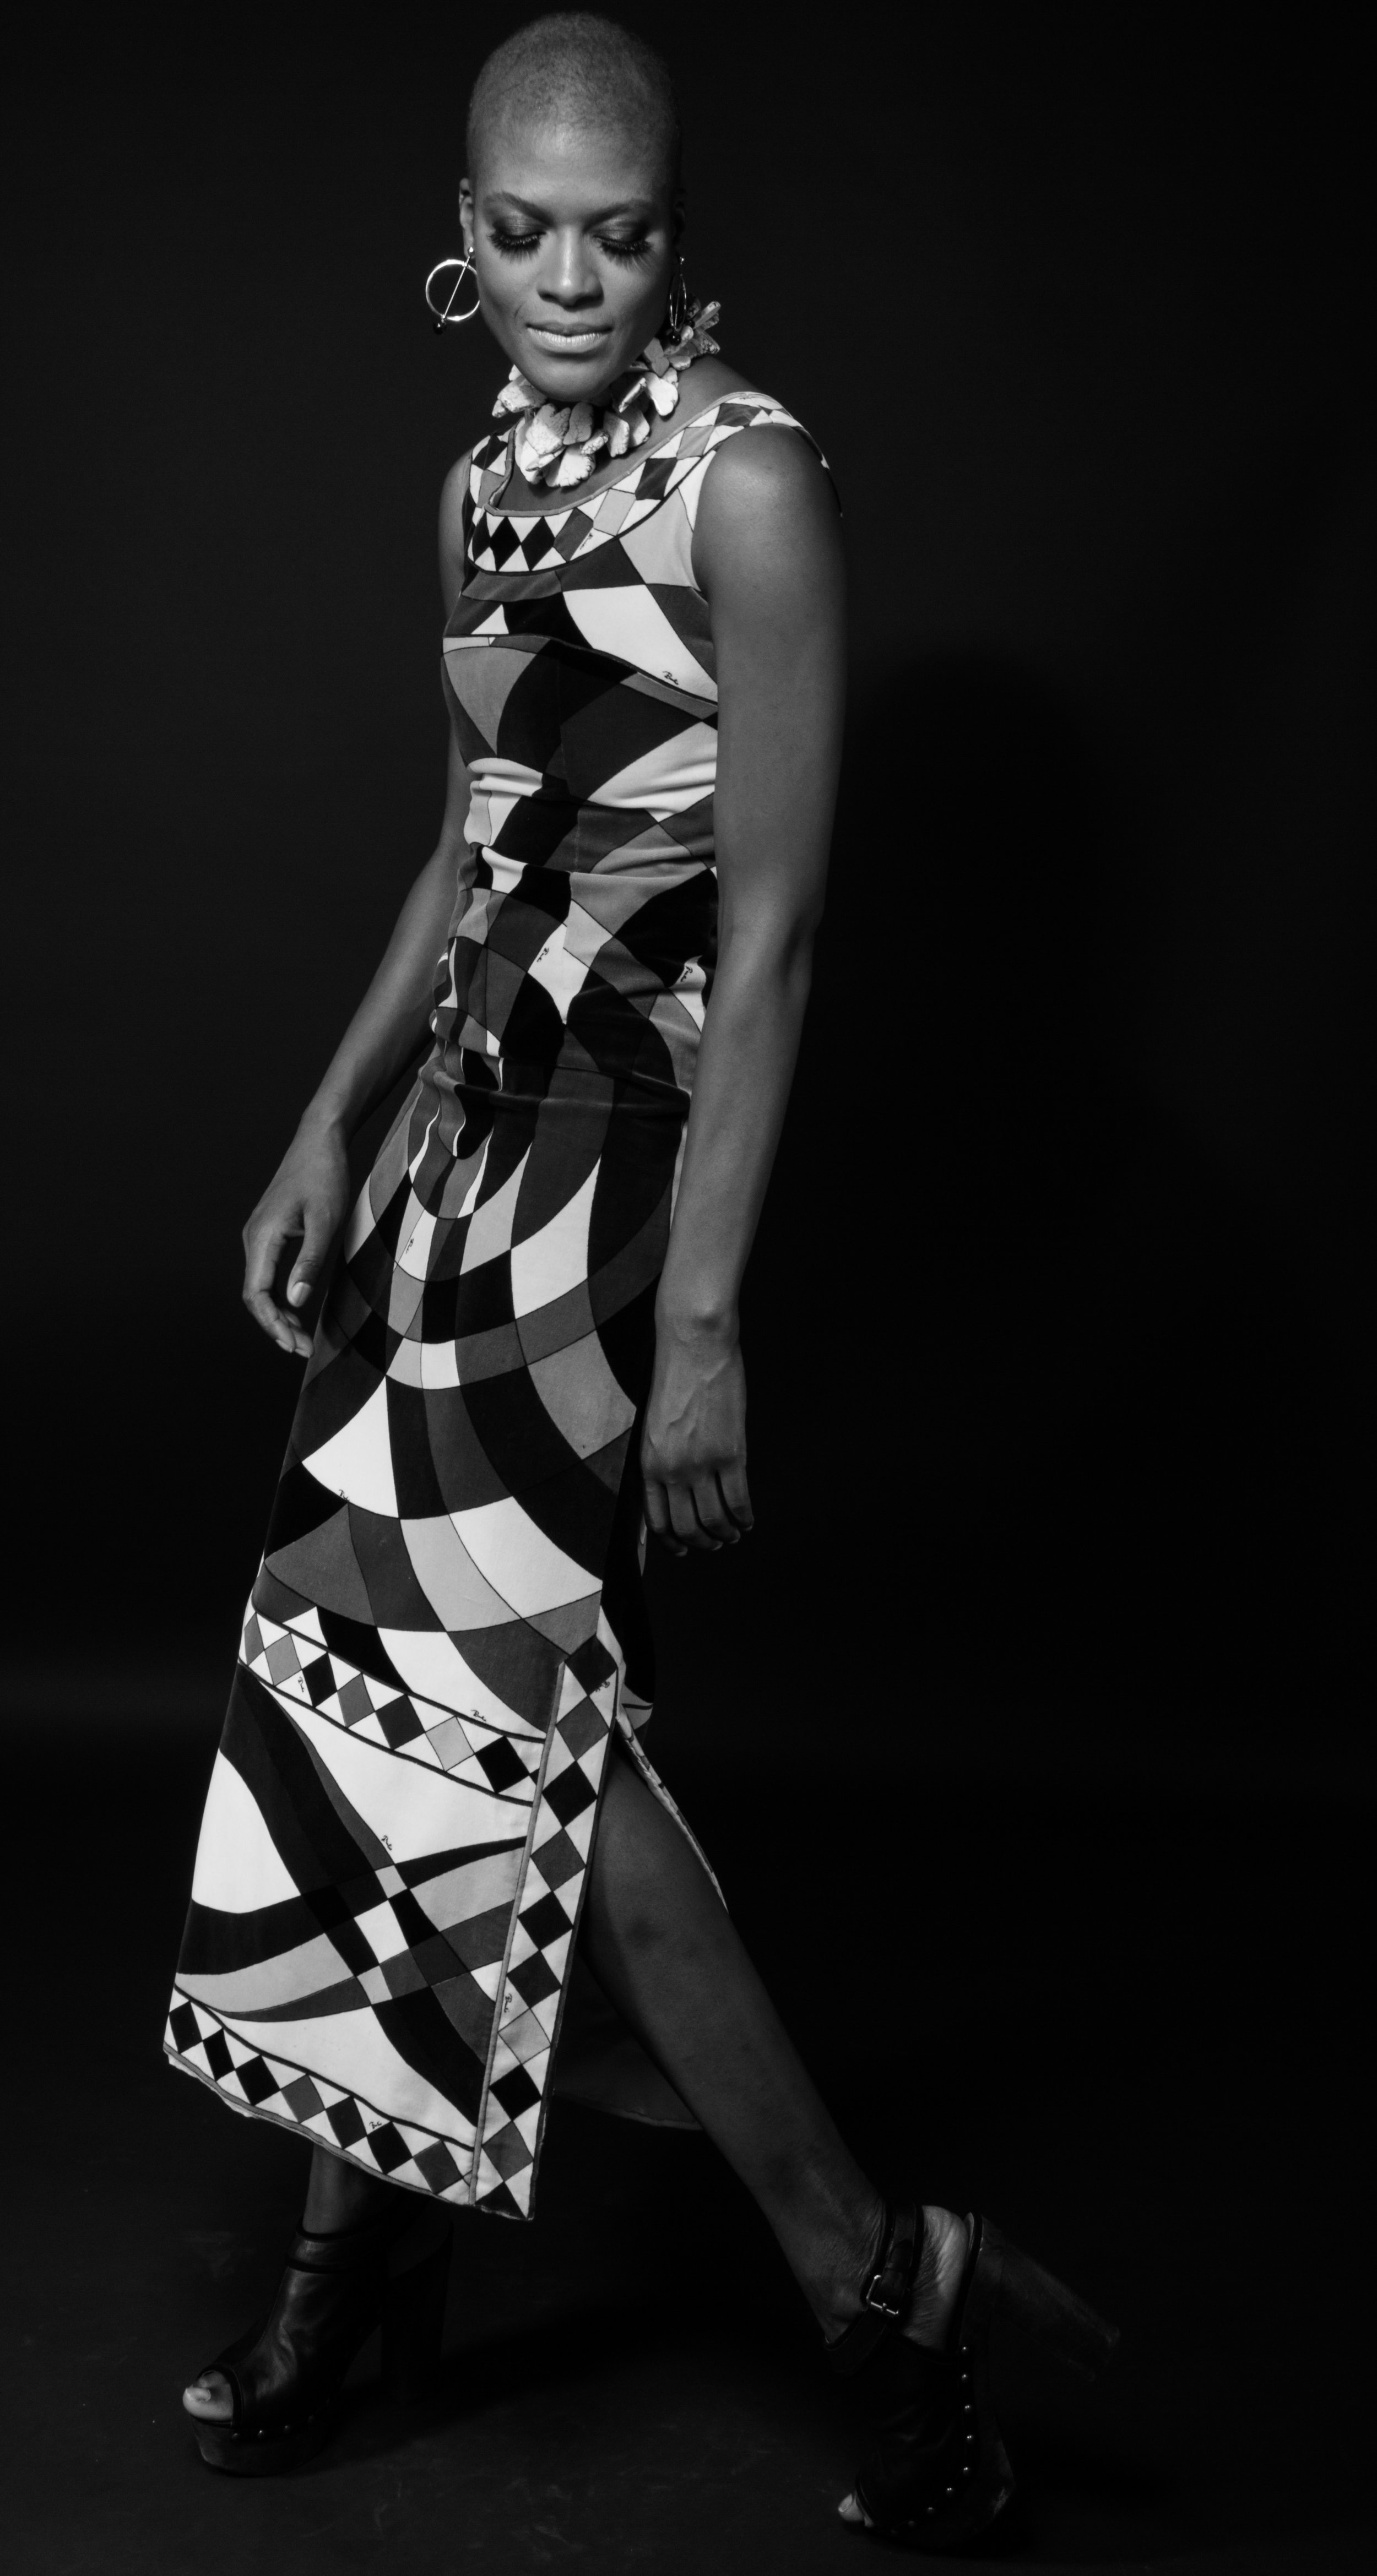 Vintage 1960's Pucci dress modeled by  @kemba_nataki  photographed by  @josephboggess2197